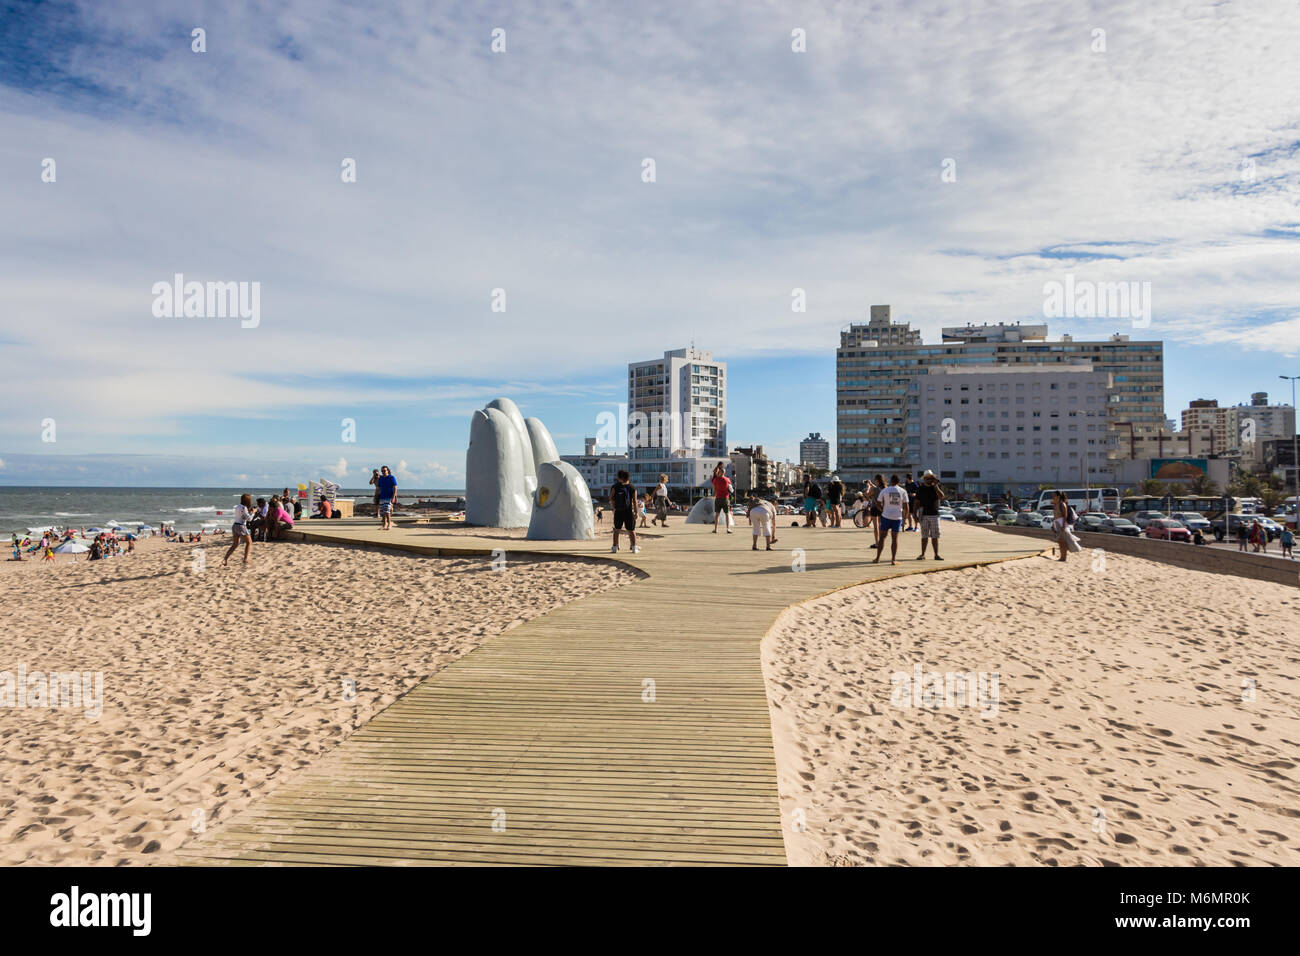 Punta Del Este, Uruguay - February 28th, 2018: People taking photos and sefies at La Mano, the sculpture made by Stock Photo